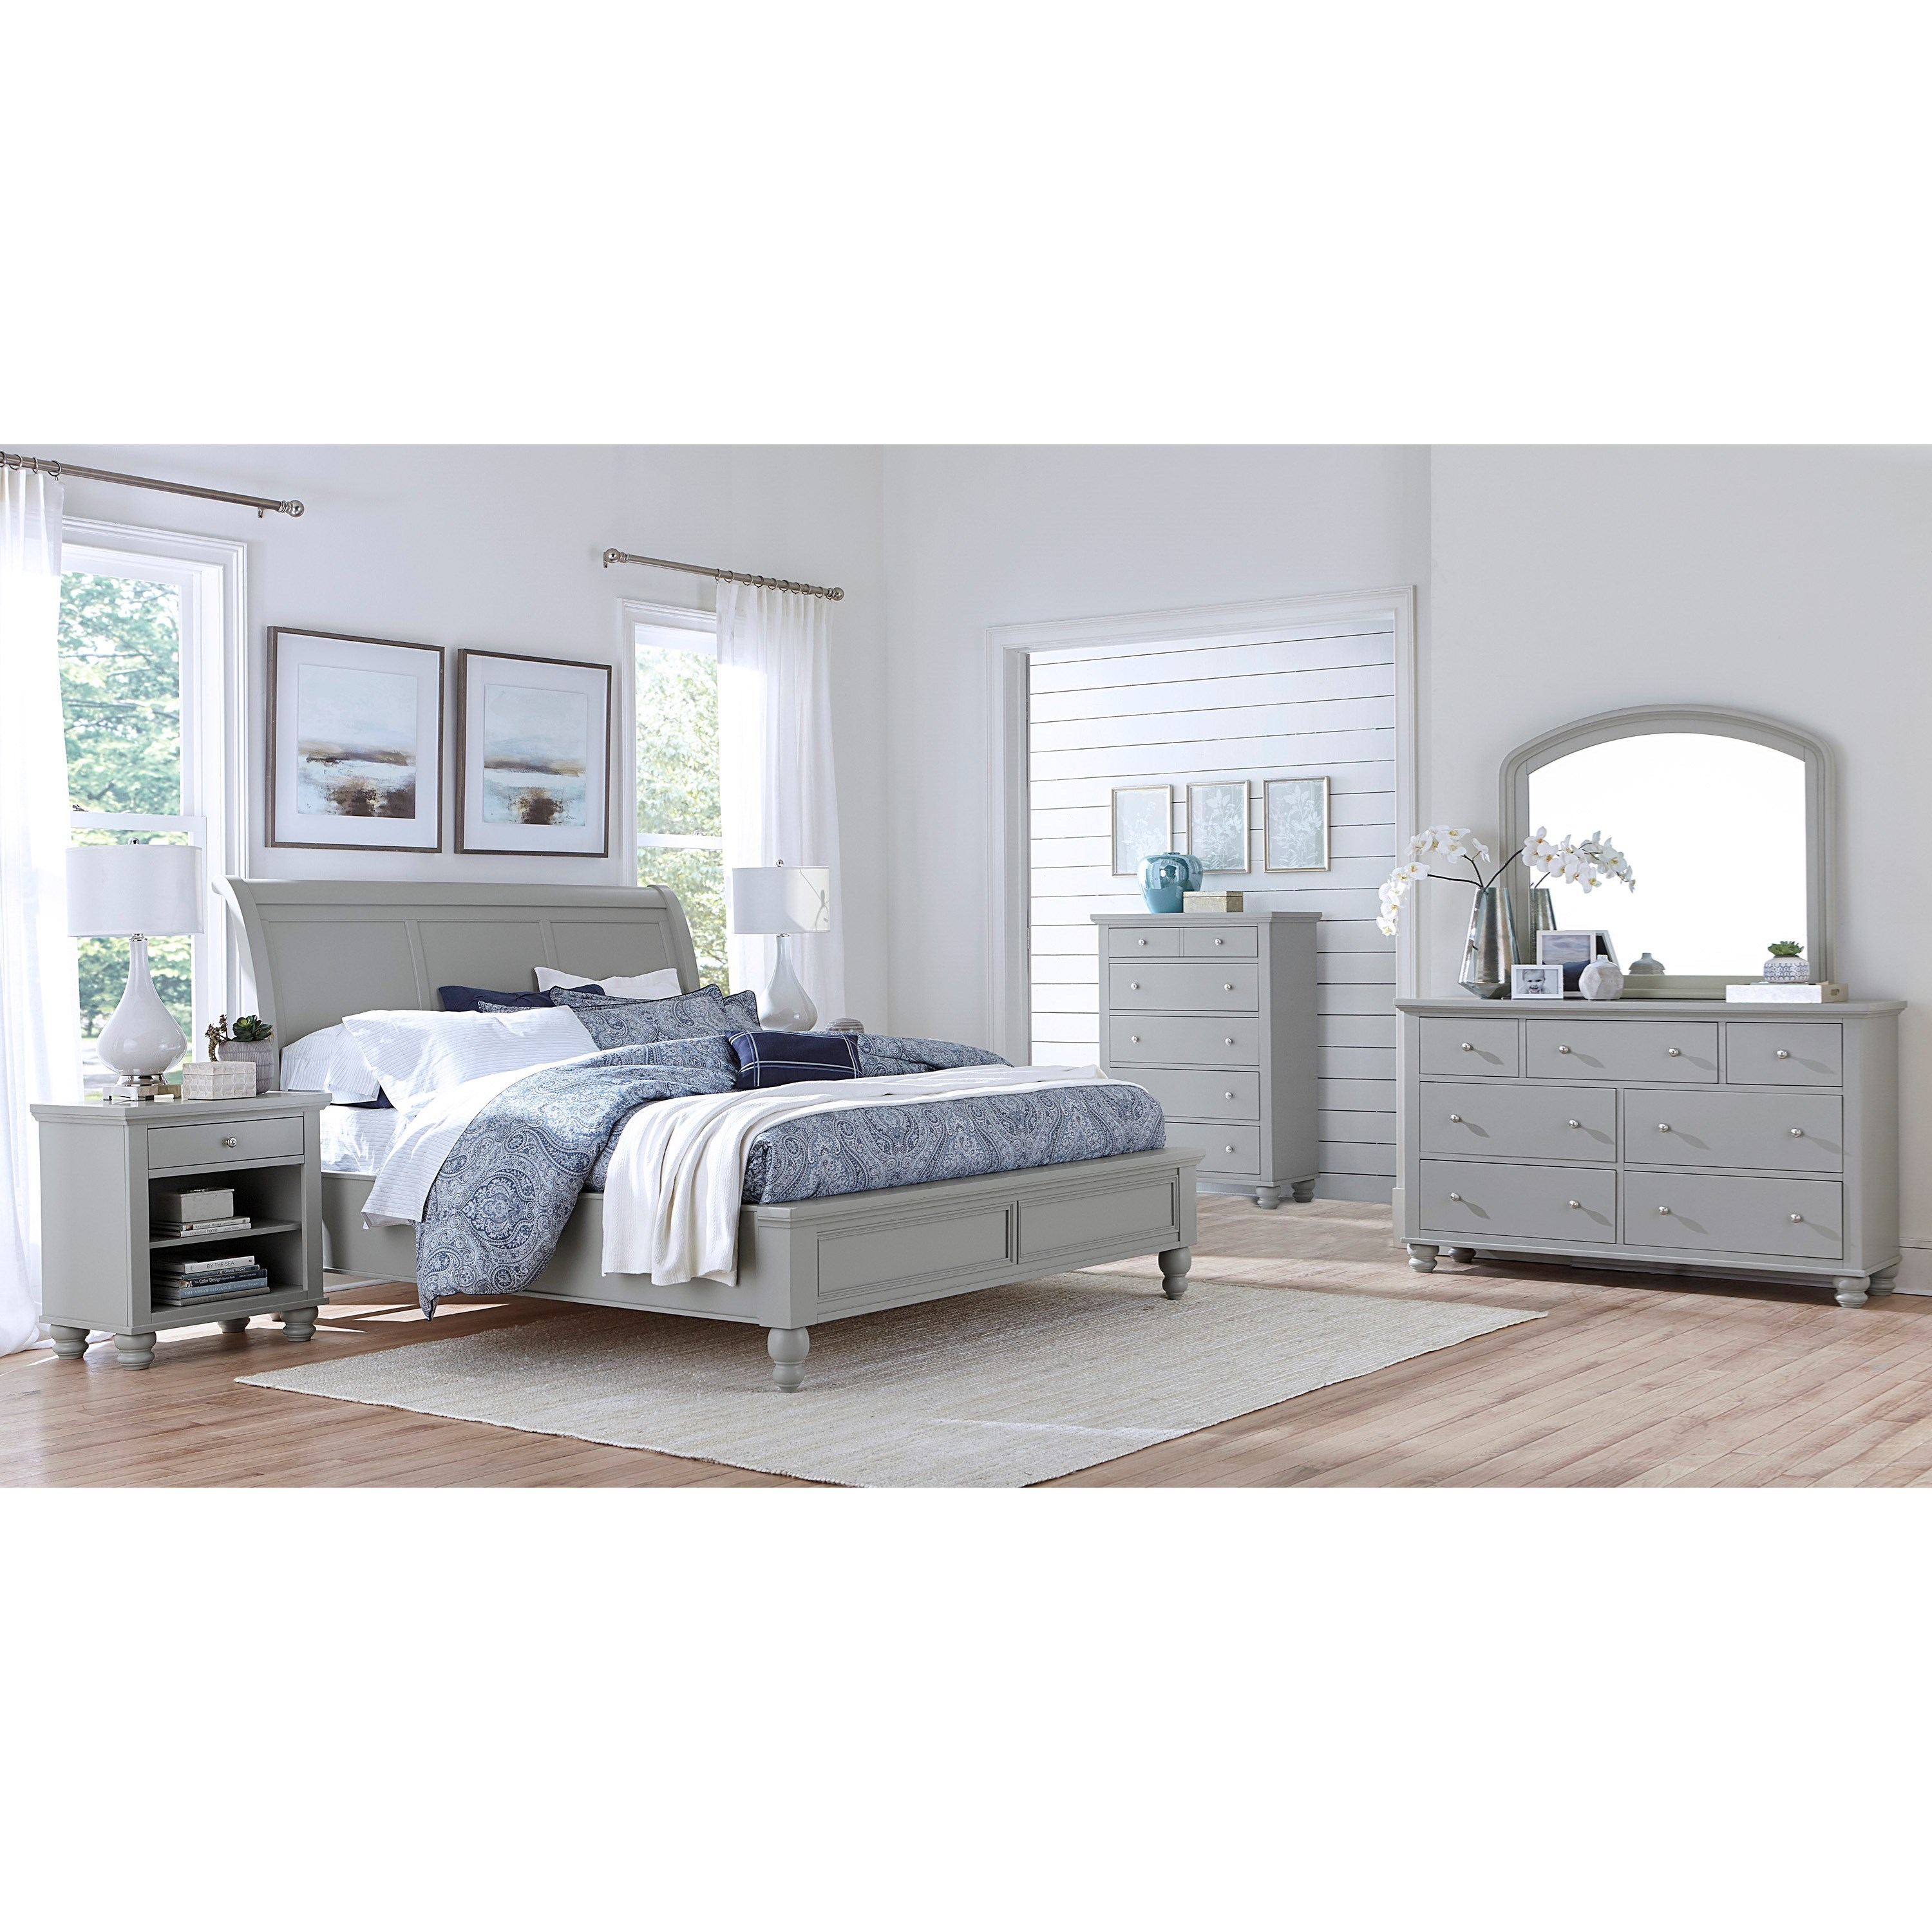 Cambridge California King Bedroom Group by Aspenhome at Walker's Furniture